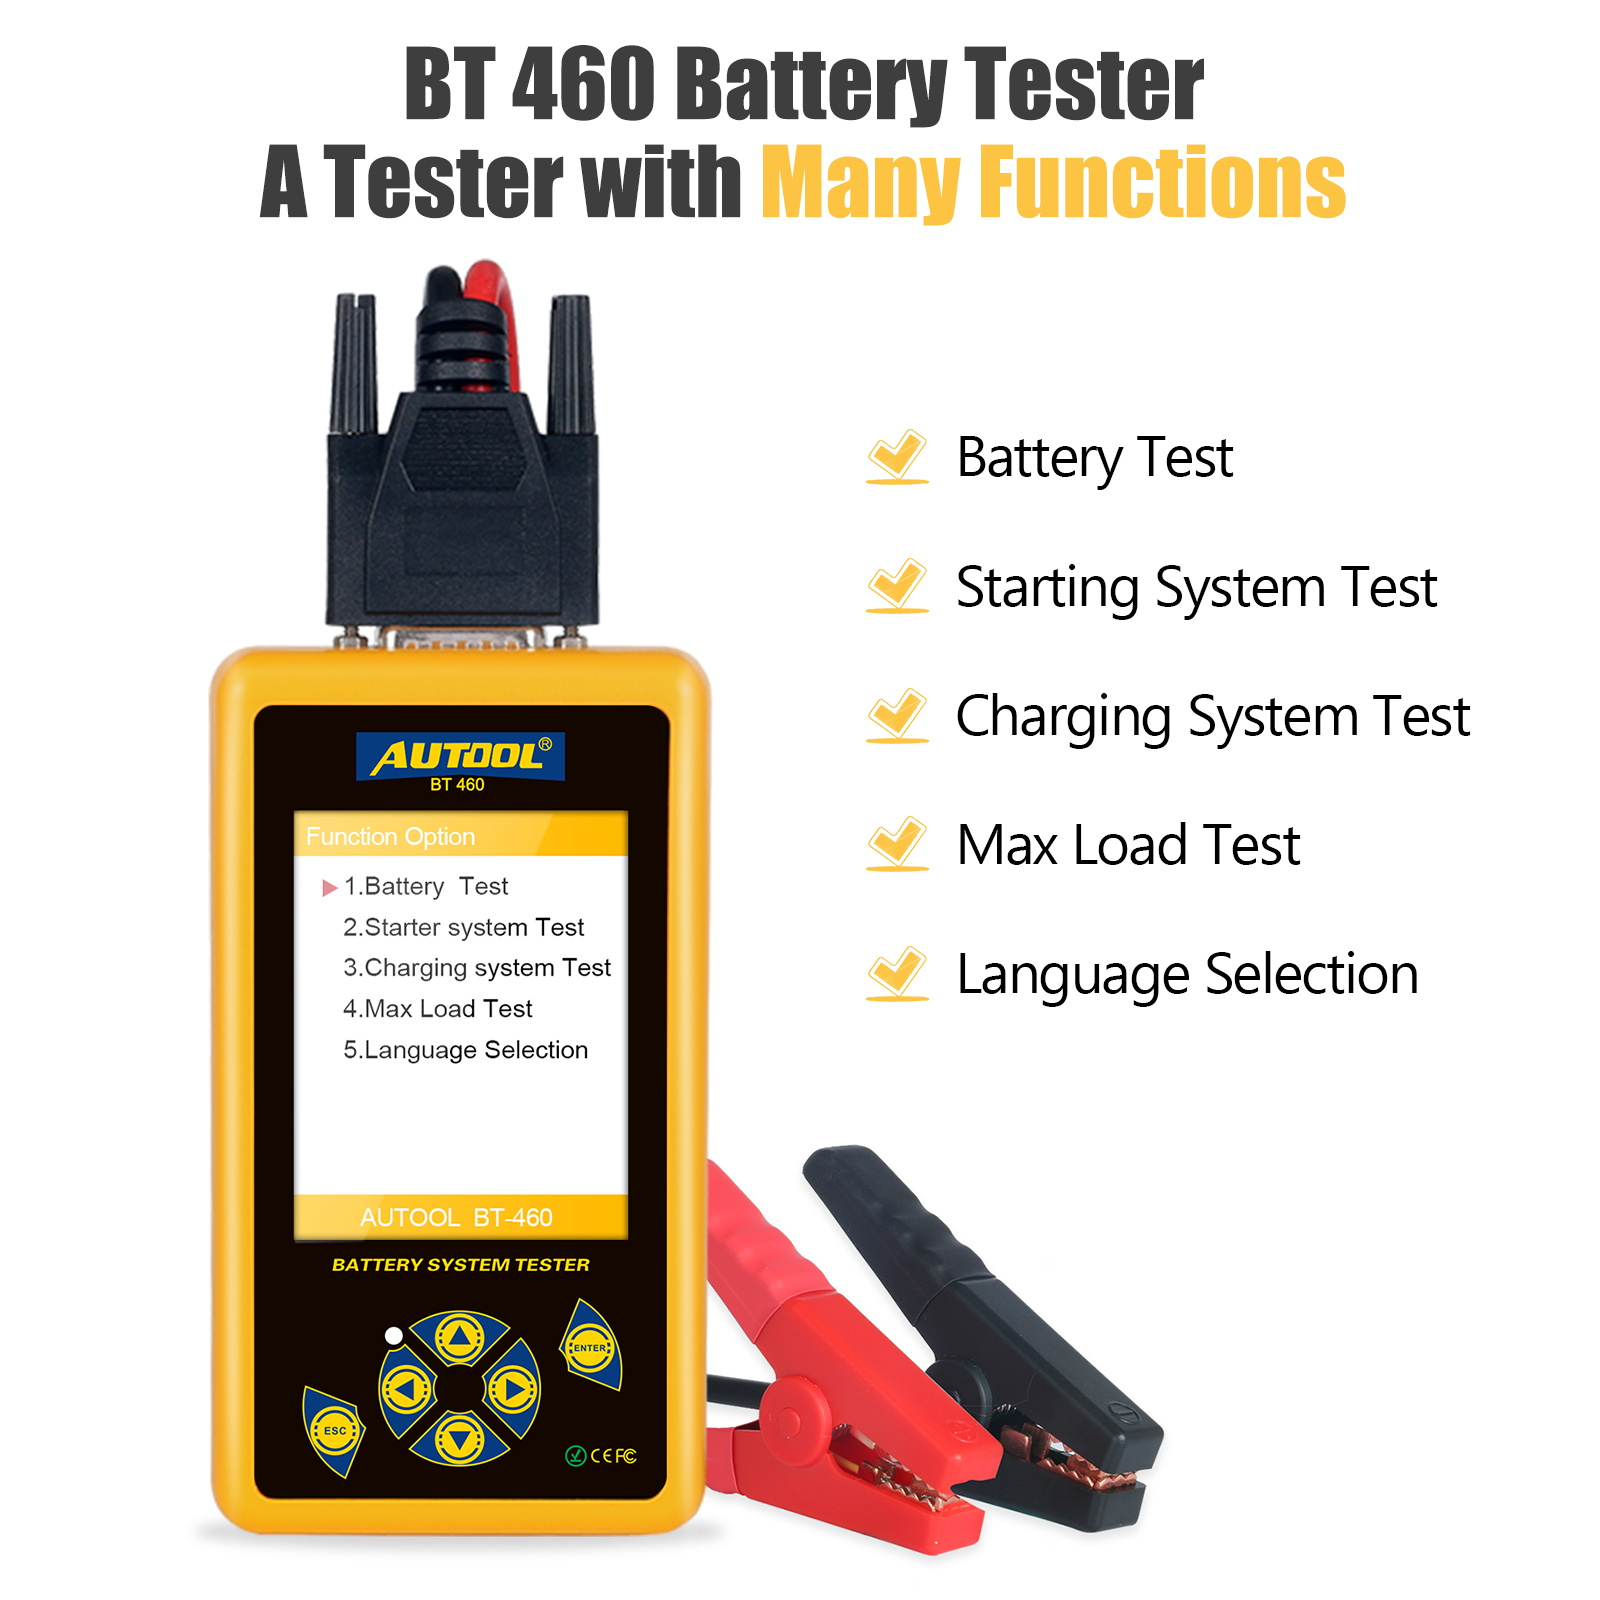 AUTOOL BT460 TFT 4inch Colorful Display Car Battery Tester Analyzer For 12V Car 24V Heavy Trucks Multifunction Battery Tester